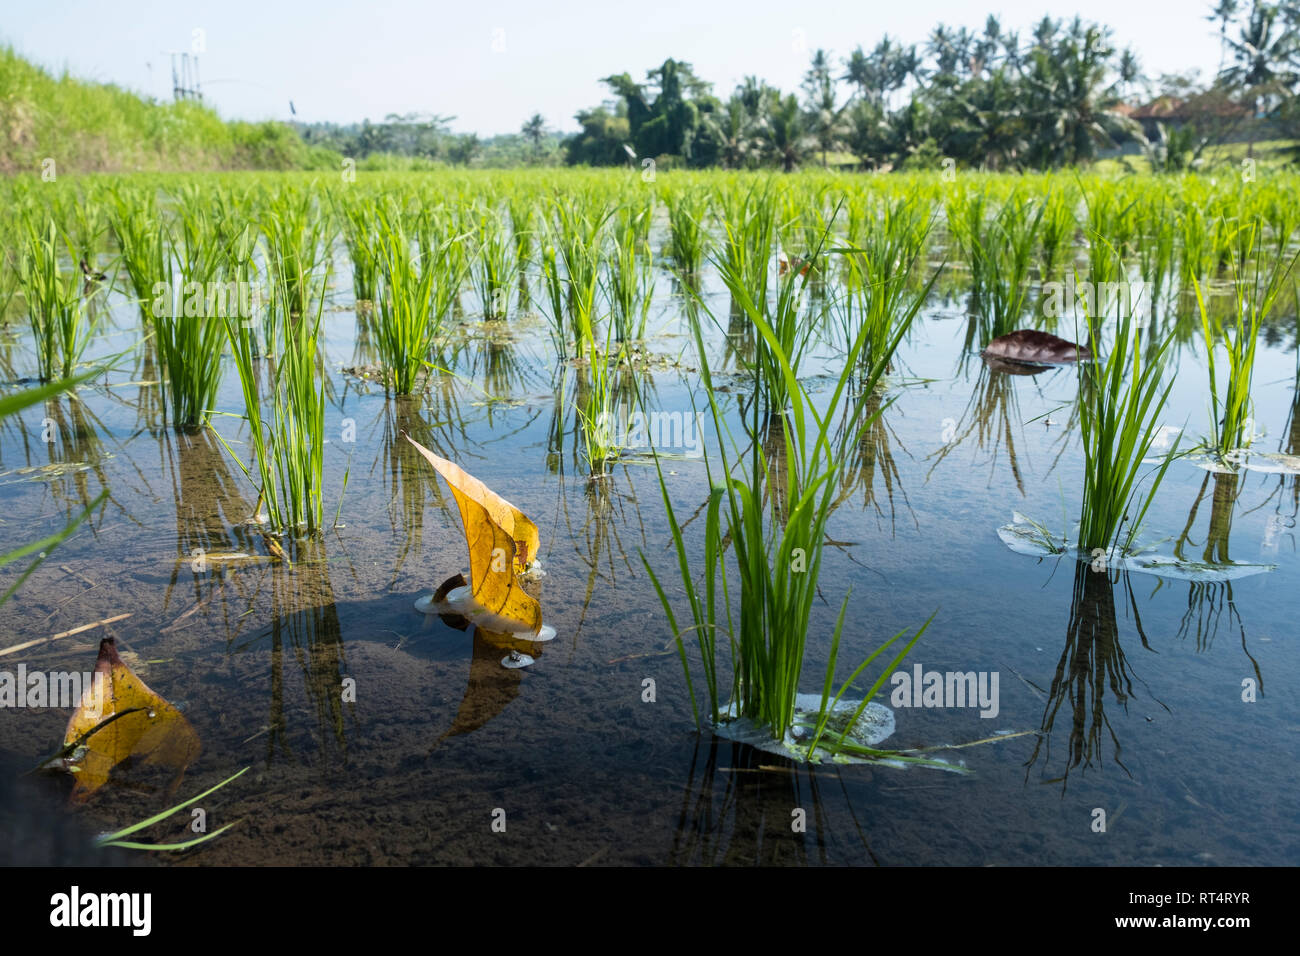 Rice fields in Bali, Indonesia Stock Photo